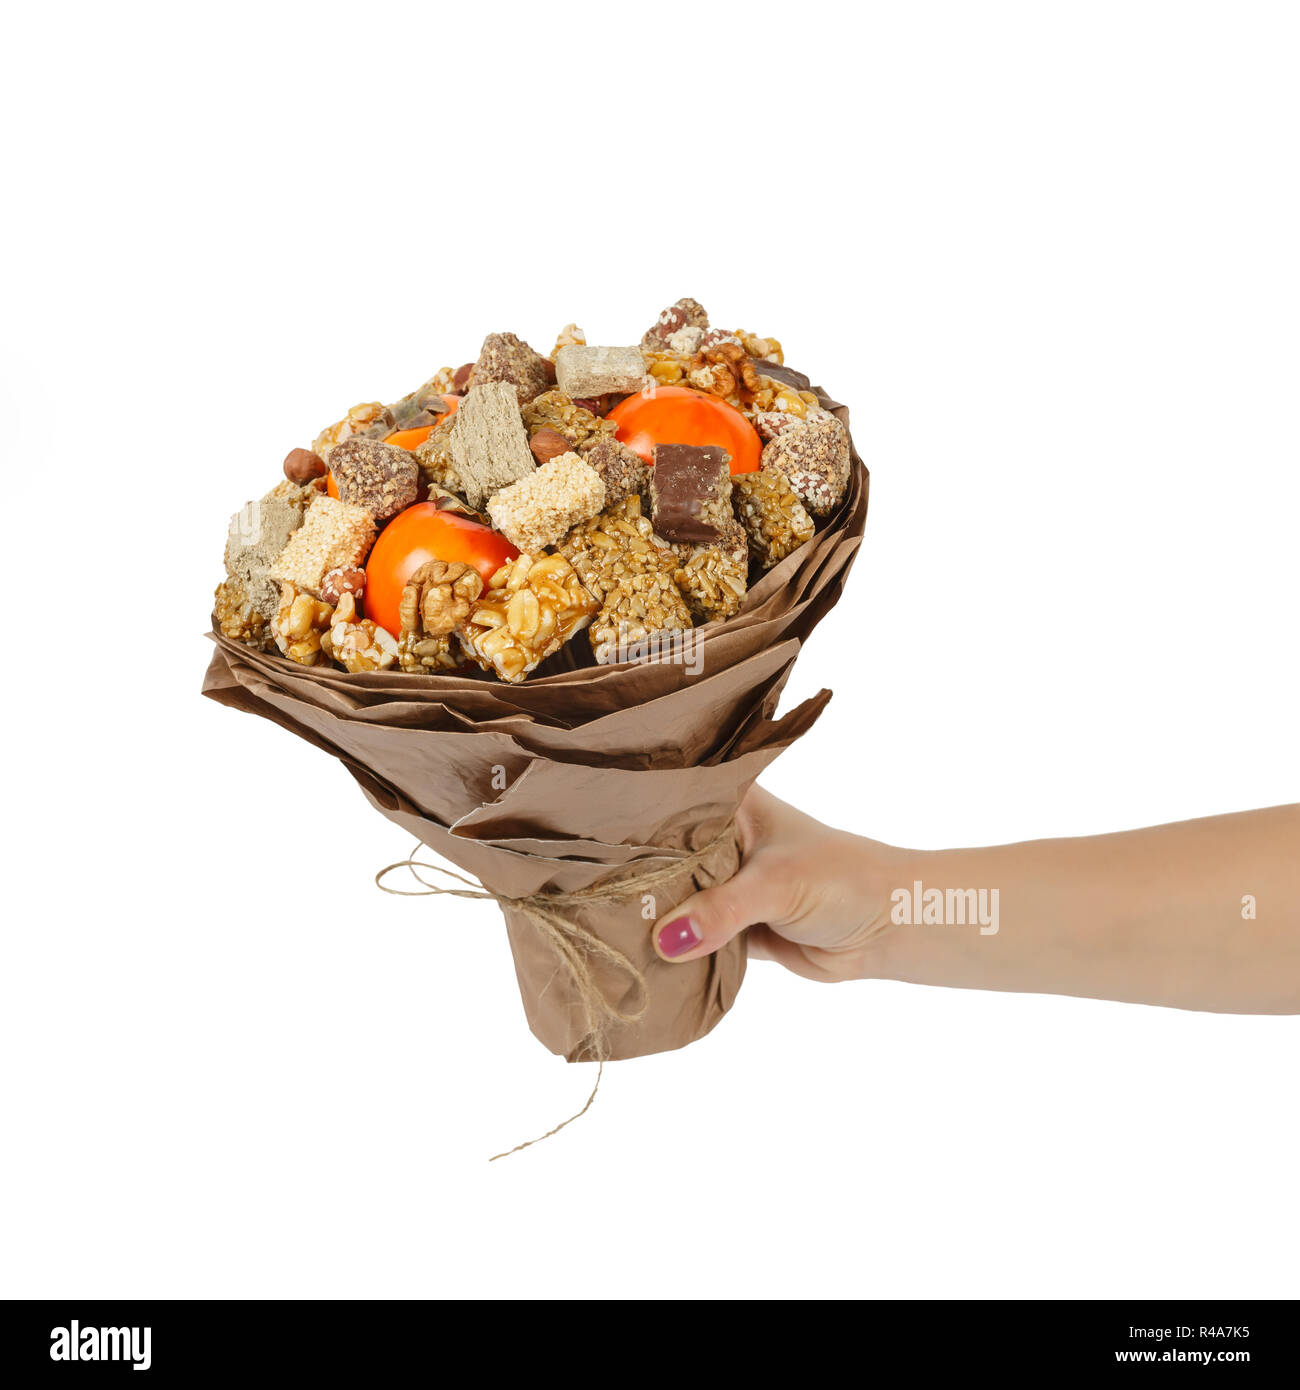 Female hand holds an original bouquet consisting of oriental sweets - halva, sesame snaps, nuts, chocolates and persimmons - Stock Image